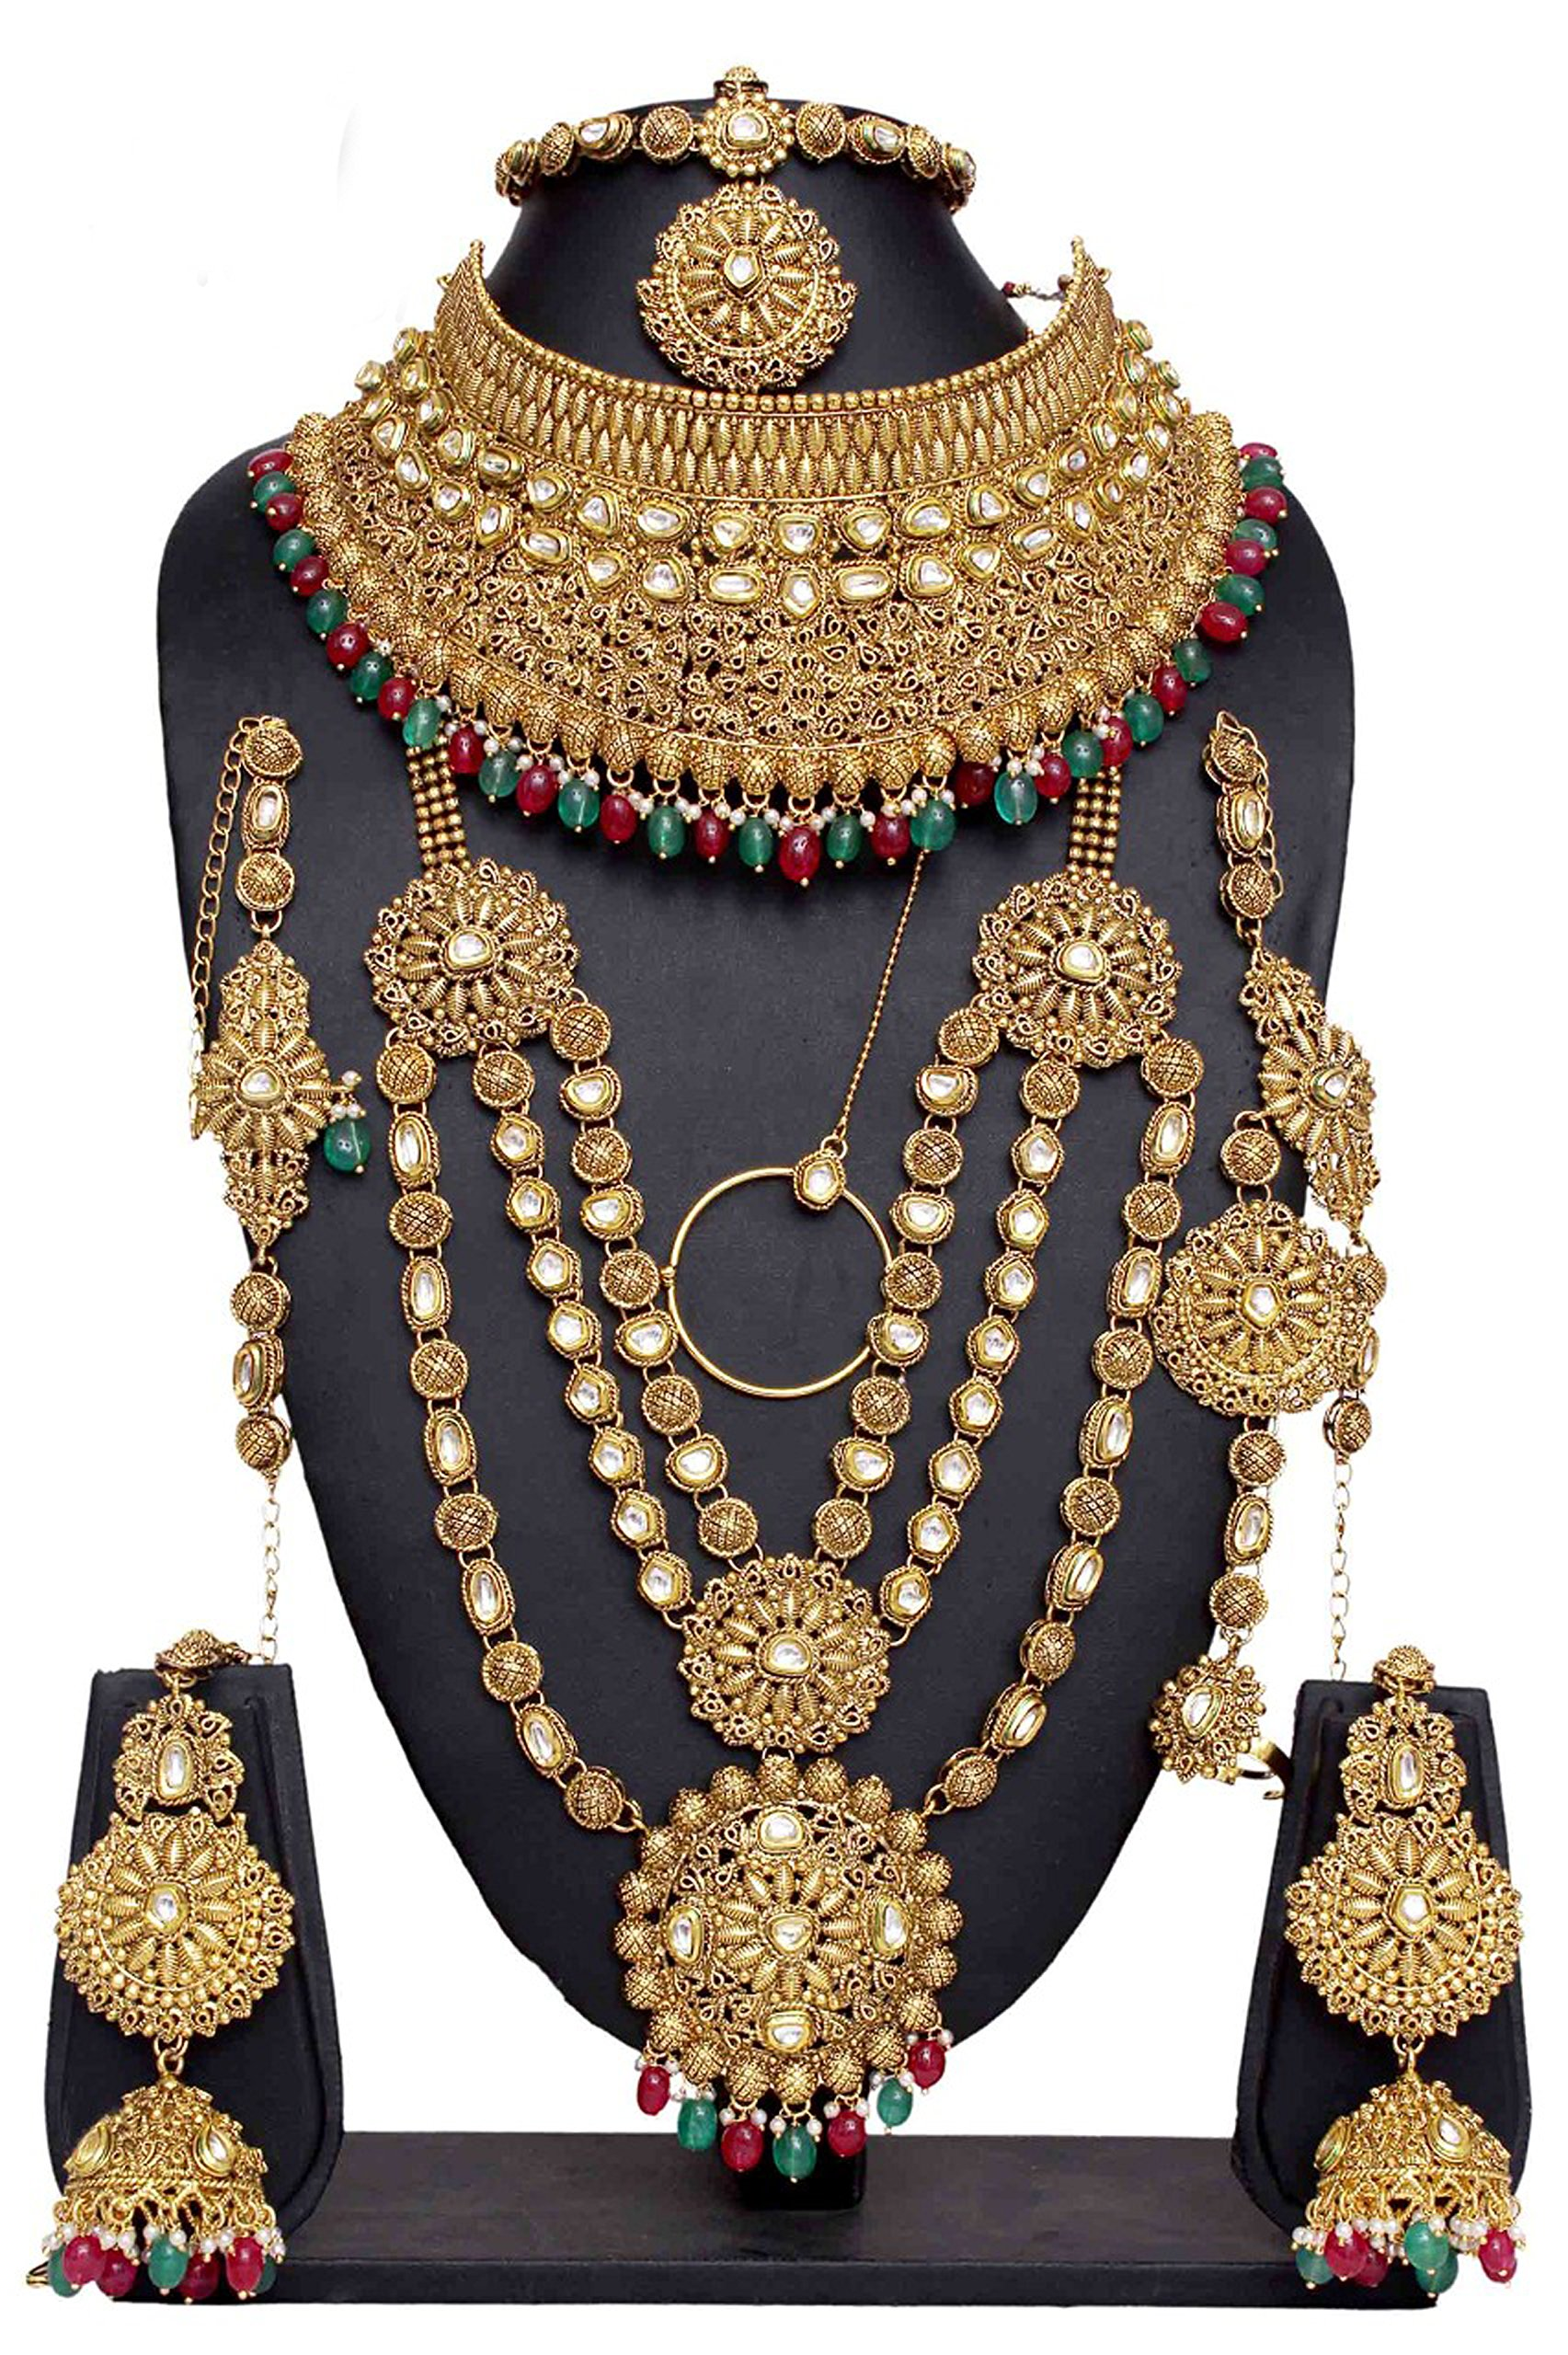 Indian Style Golden Plated Kundan Stone Polki Indian Necklace Earrings Bridal Set Jewelry For Womens